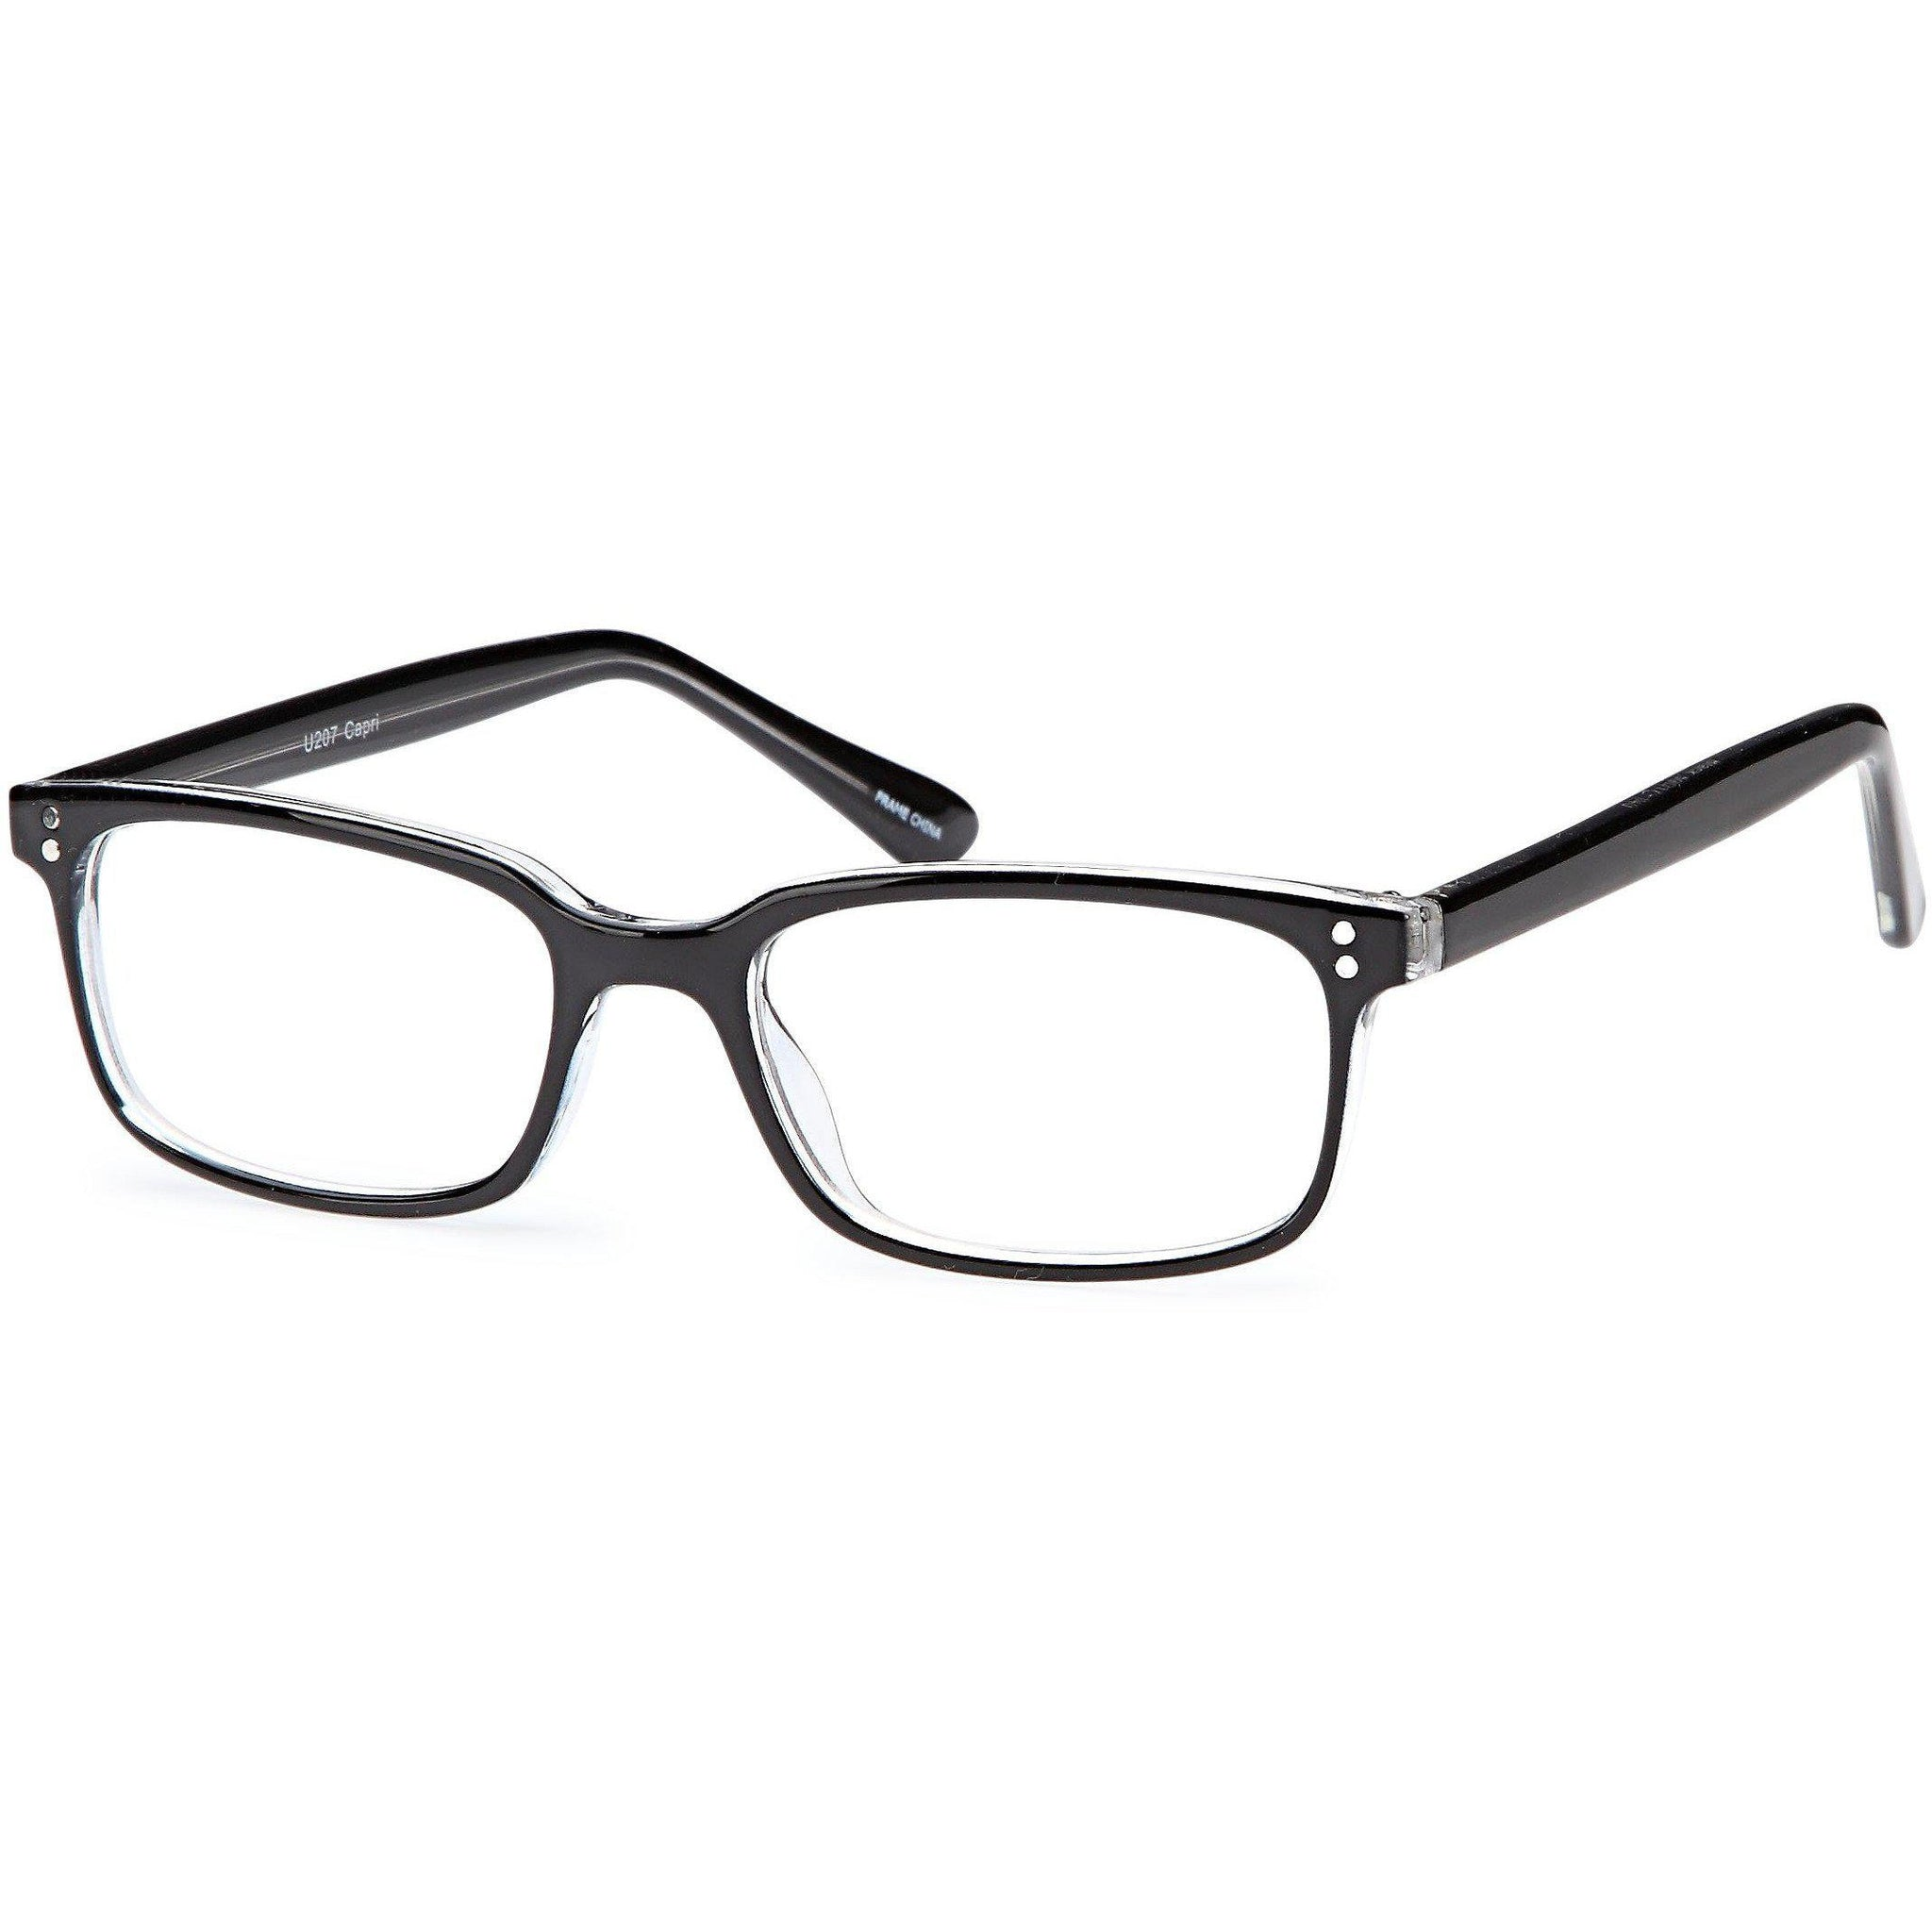 4U Prescription Glasses U 207 Optical Eyeglasses Frame - timetoshade